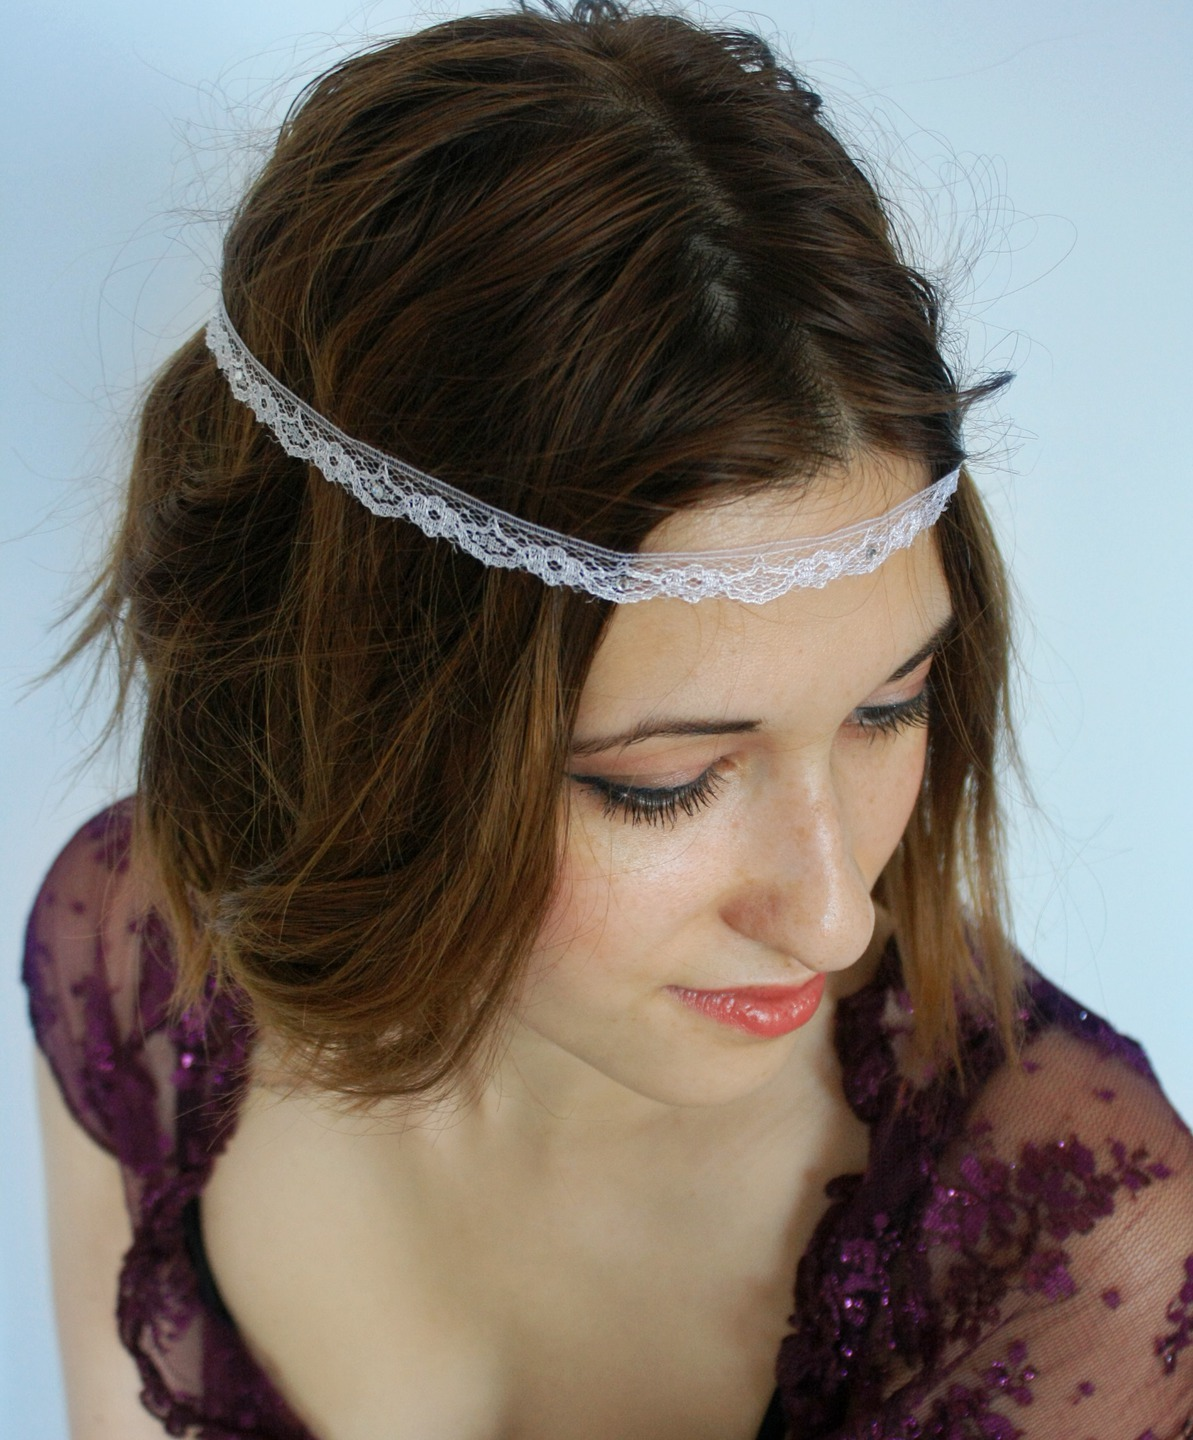 Coiffure Mariage Simple Et Chic Headband Mariage Boheme Latest Headband Mariage Blanc Et